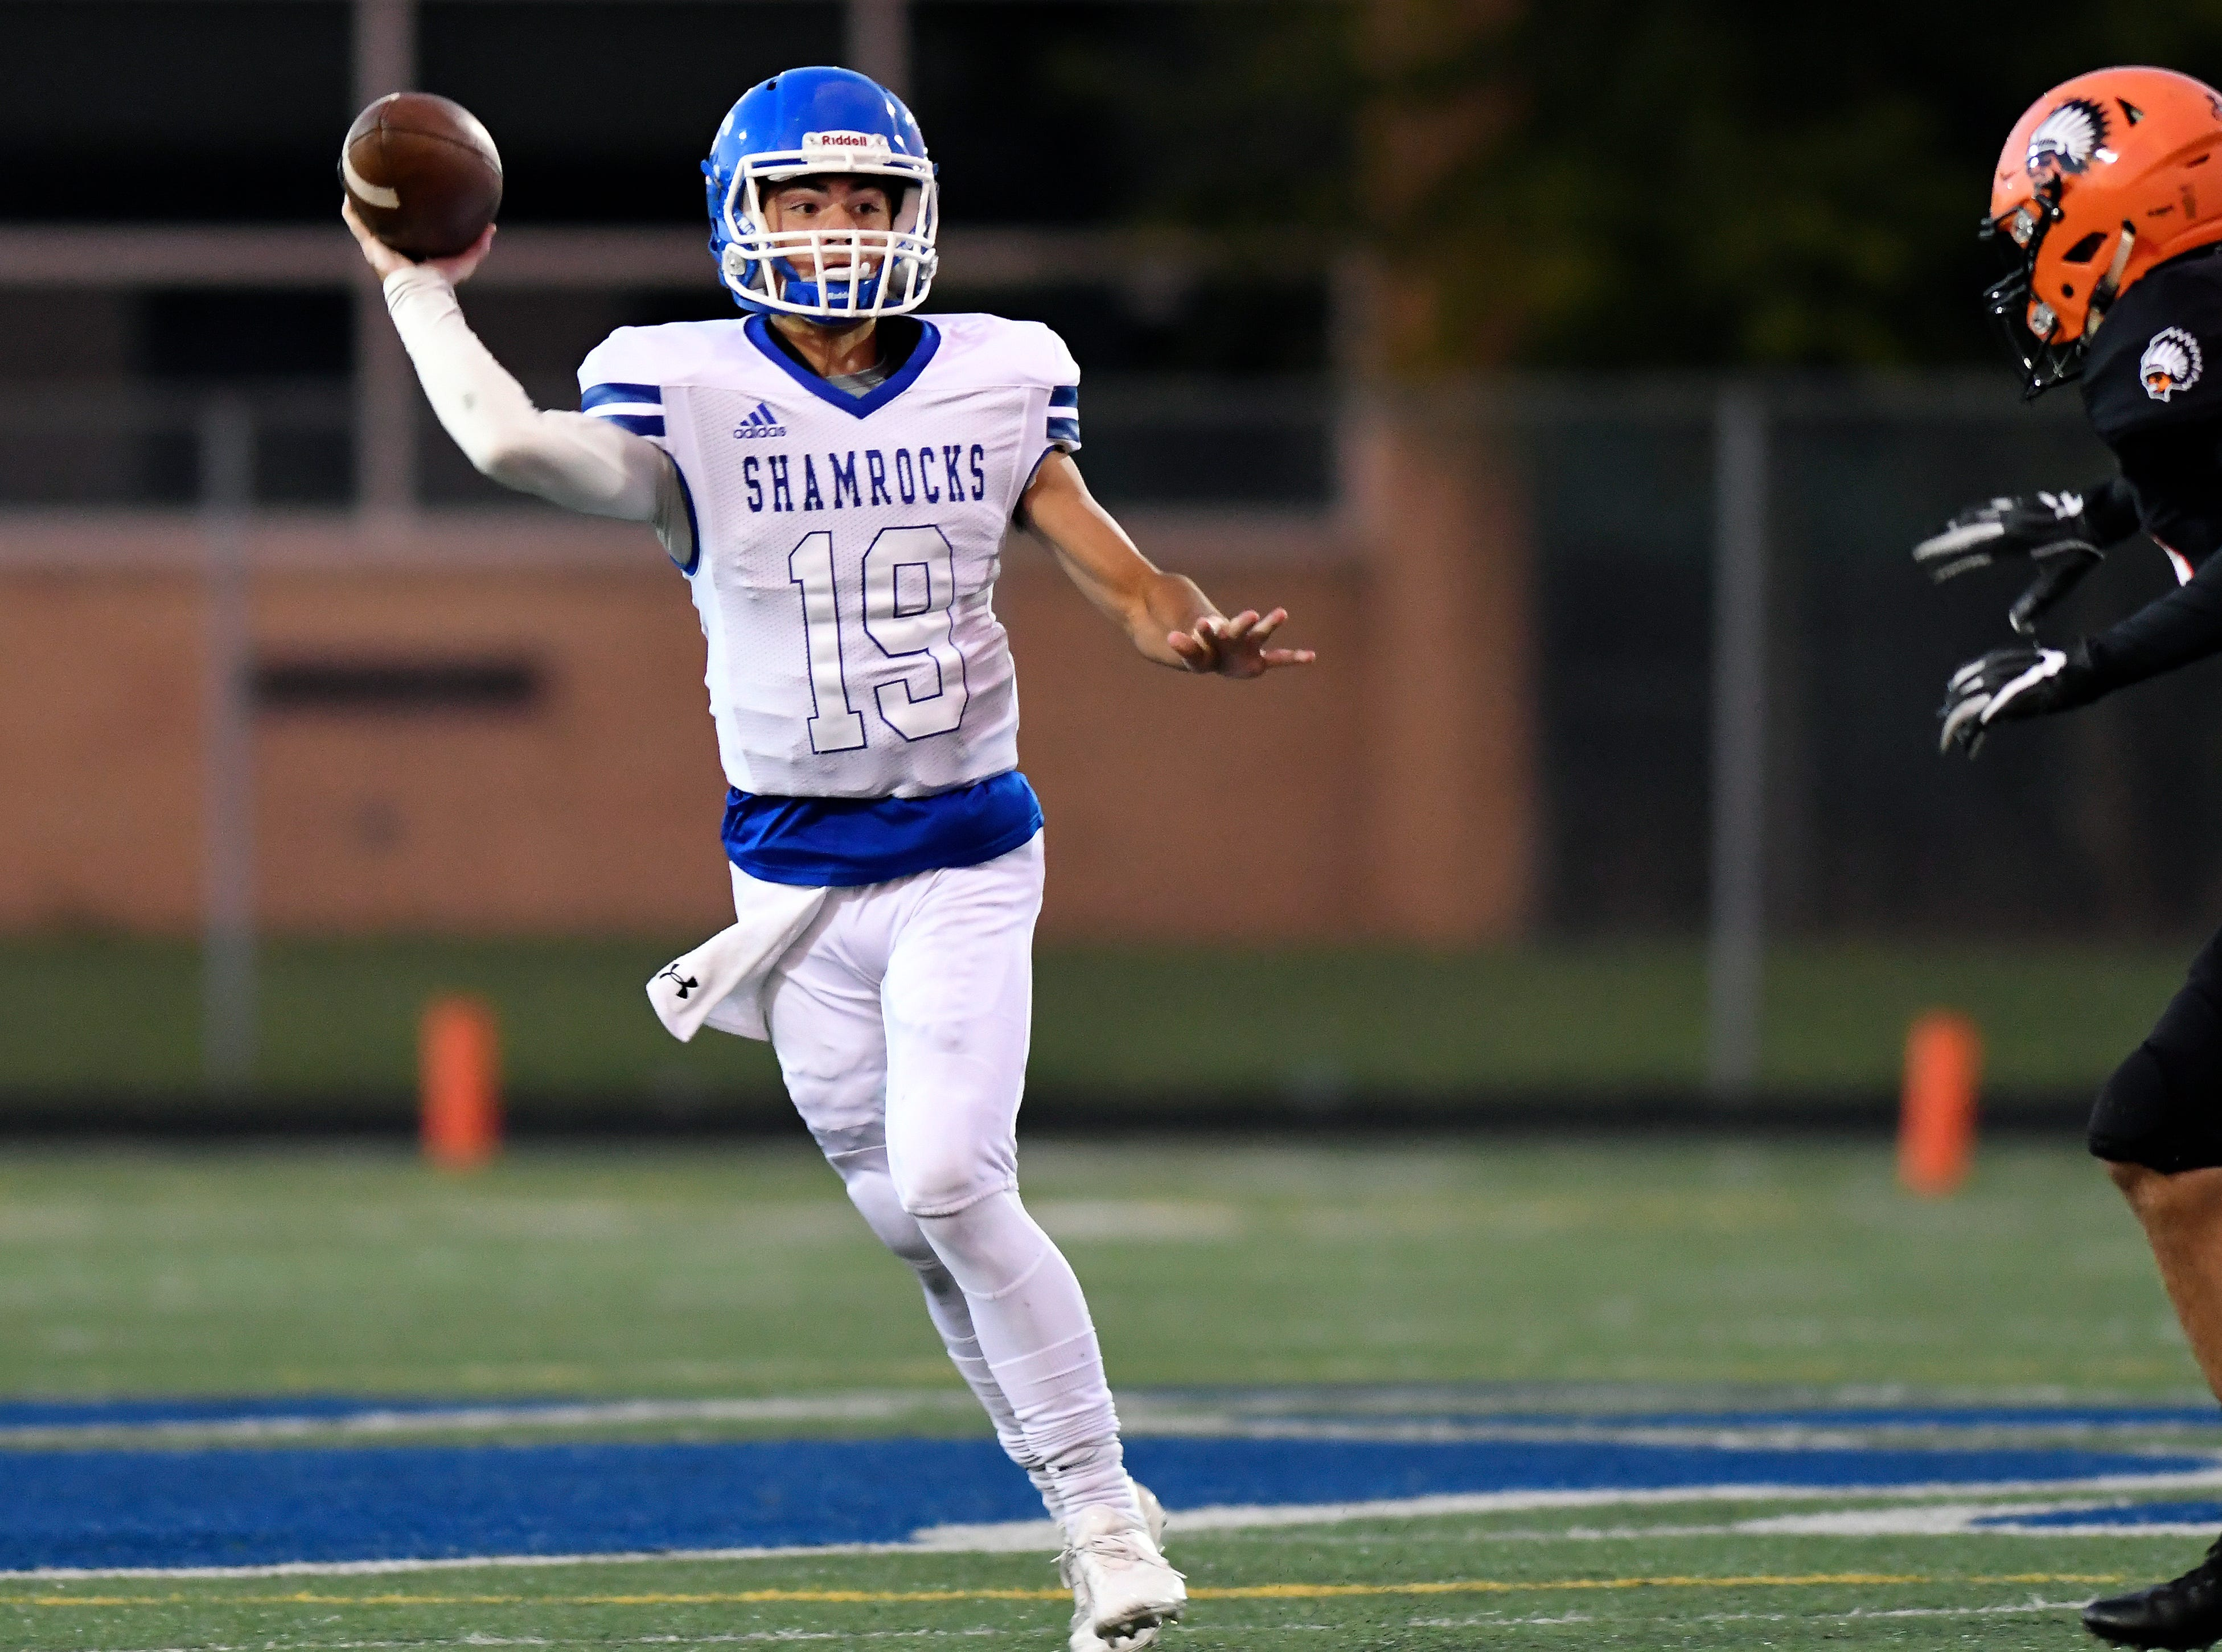 Detroit Catholic Central quarterback Jack Beno (19) passes against Birmingham Brother Rice in the second quarter, Saturday, Sept. 22, 2018 at Hurley Field in Berkley, Mich.  Catholic Central defeated Brother Rice, 21-0.